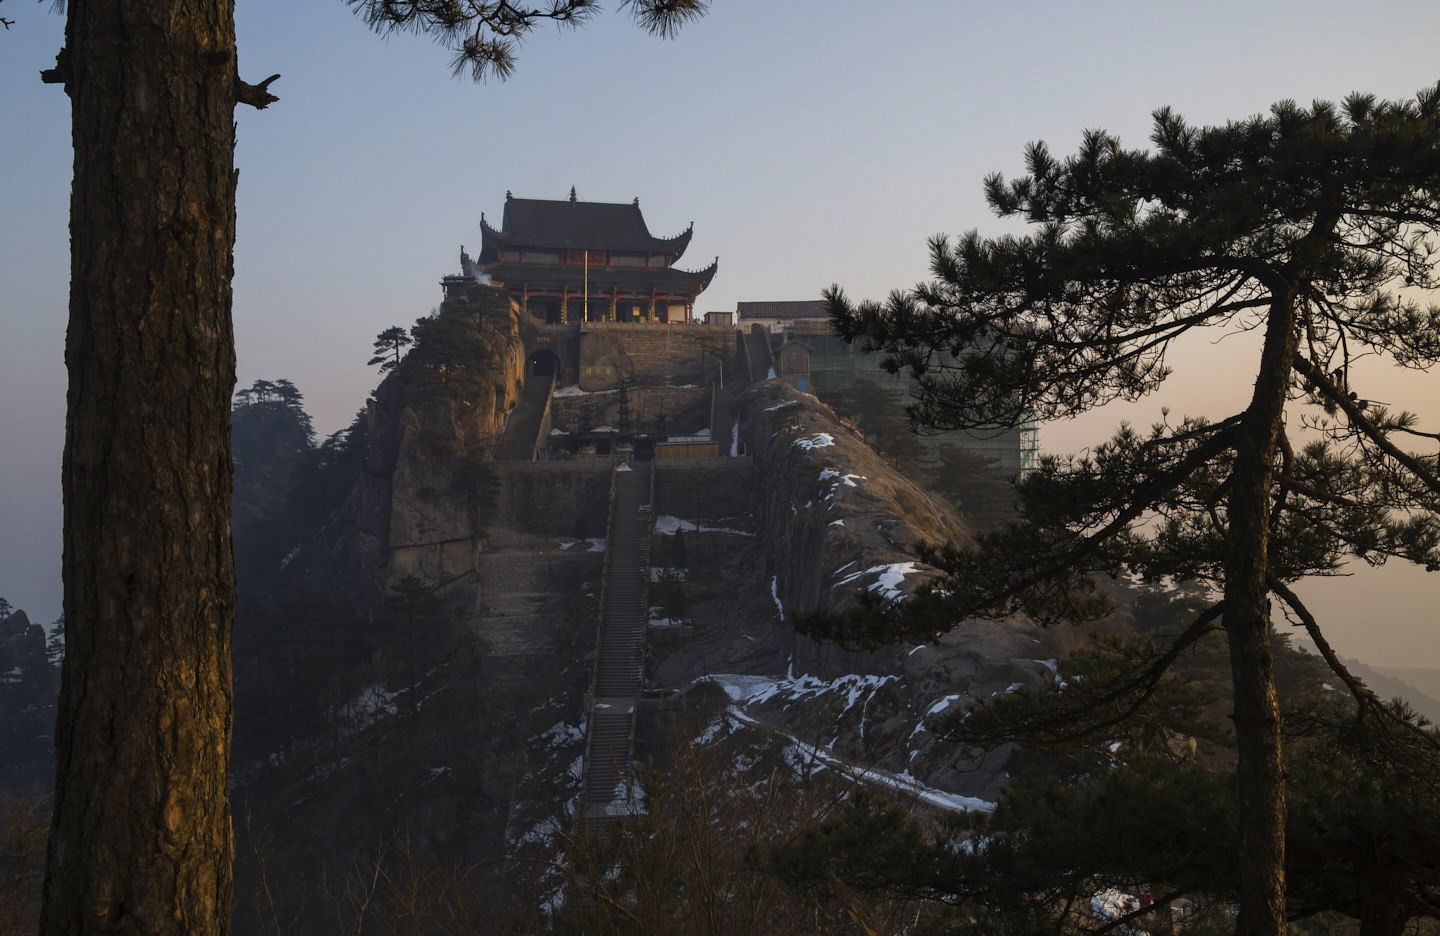 Tiantai temple reflects the golden sunlight, framed by pine trees